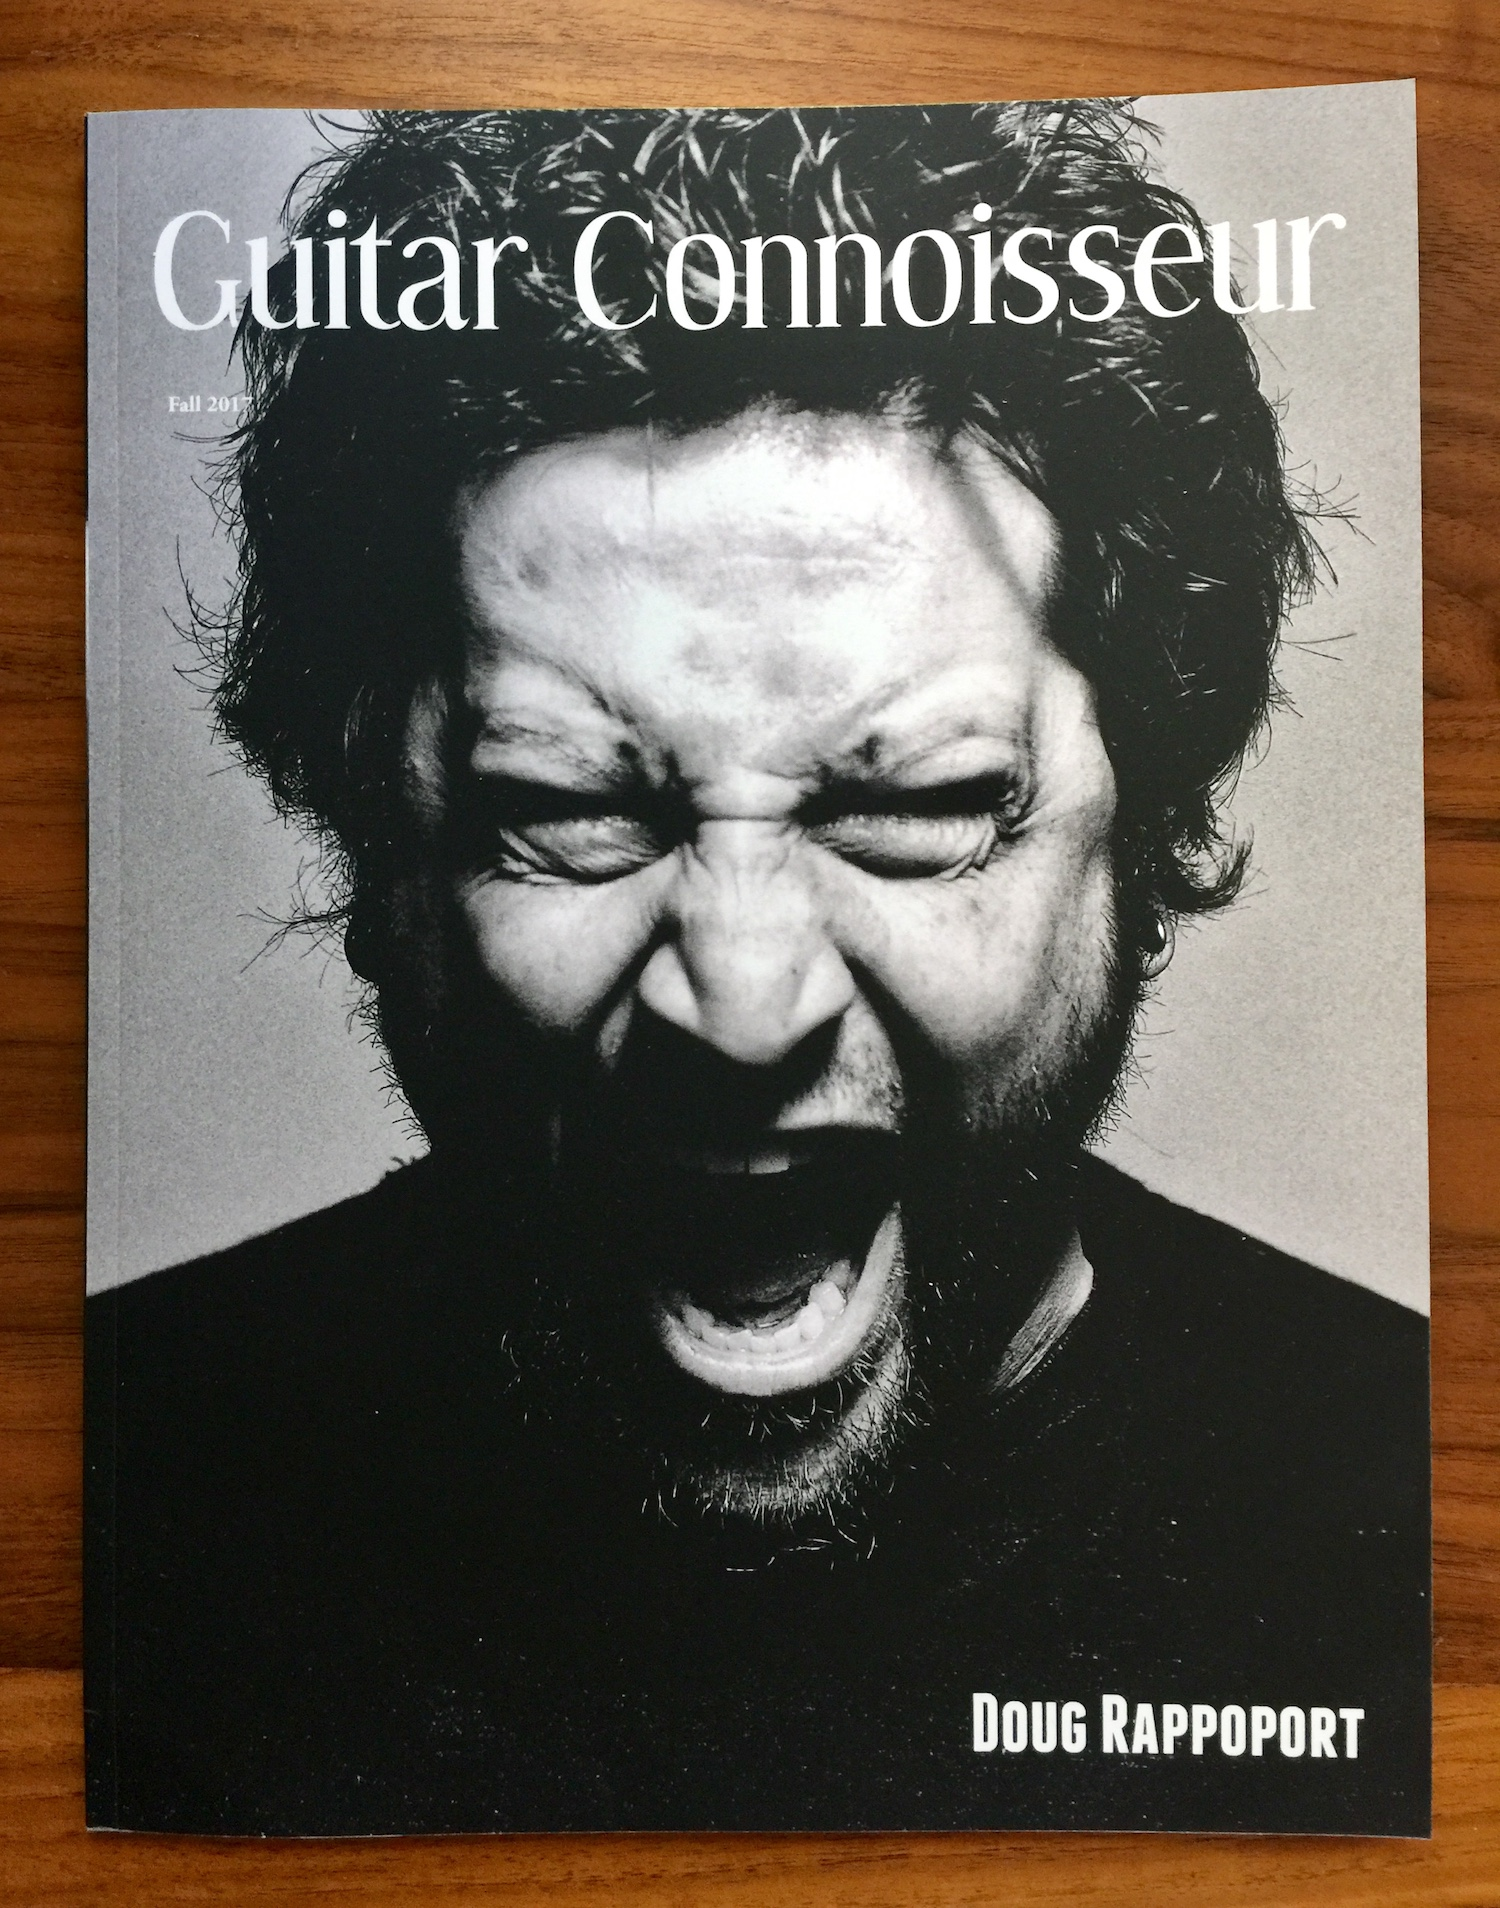 doug rappoport cover guitar connoisseur by greg vorobiov.jpg